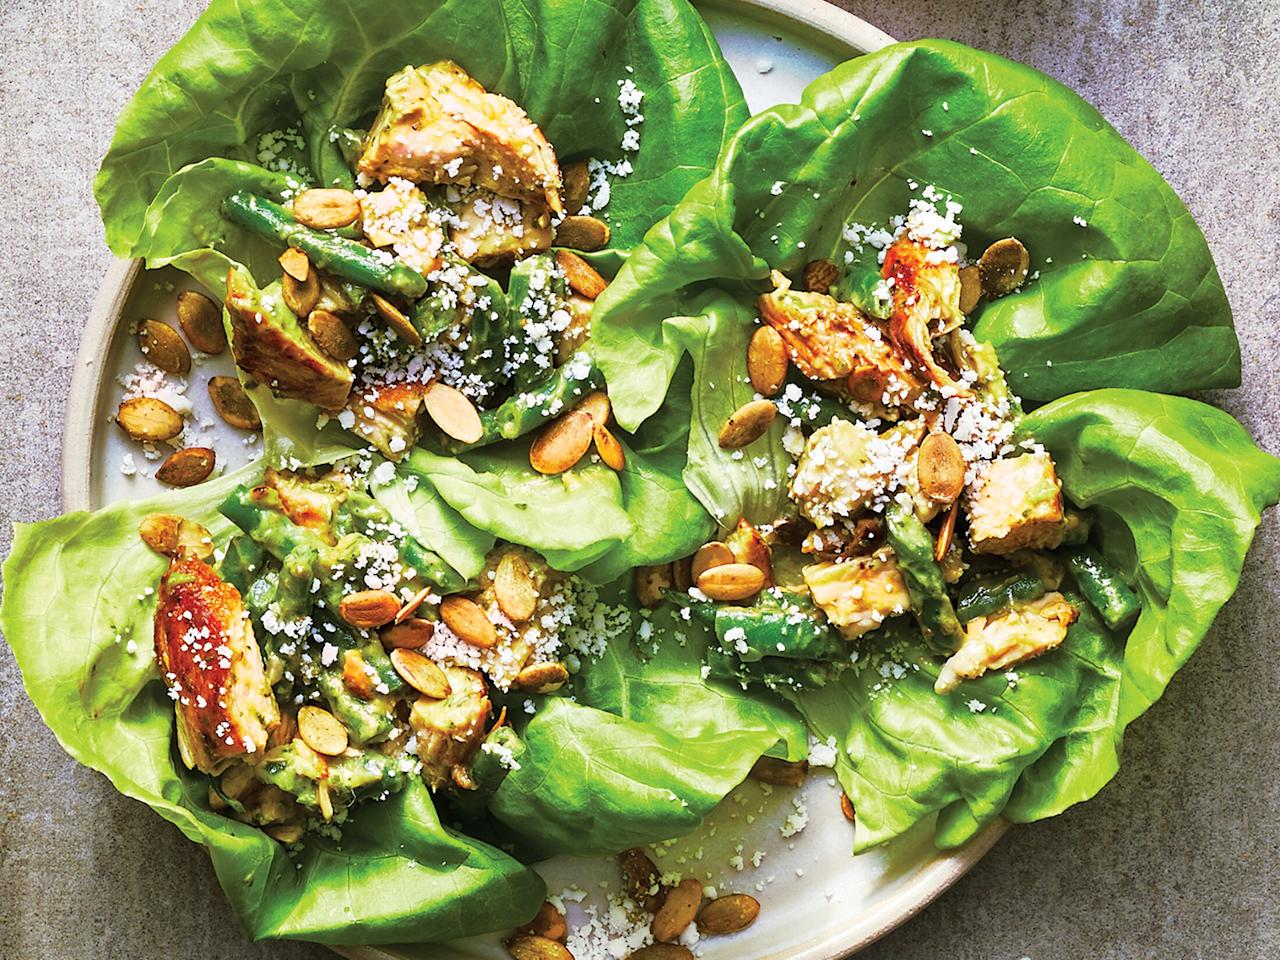 """<p>These fresh lettuce wraps are a cinch to throw together thanks to a smart use of leftovers. Serve them with whatever variety of lettuce leaf you prefer—romaine, iceberg, or green leaf. If you're packing this to take to work, wait until you're ready to eat before filling the leaves, so the lettuce stays crisp. </p> <p> <a href=""""https://www.cookinglight.com/recipes/lemon-garlic-chicken-salad-lettuce-cups"""">View Recipe: Lemon-Garlic Chicken Salad Lettuce Cups</a></p>"""